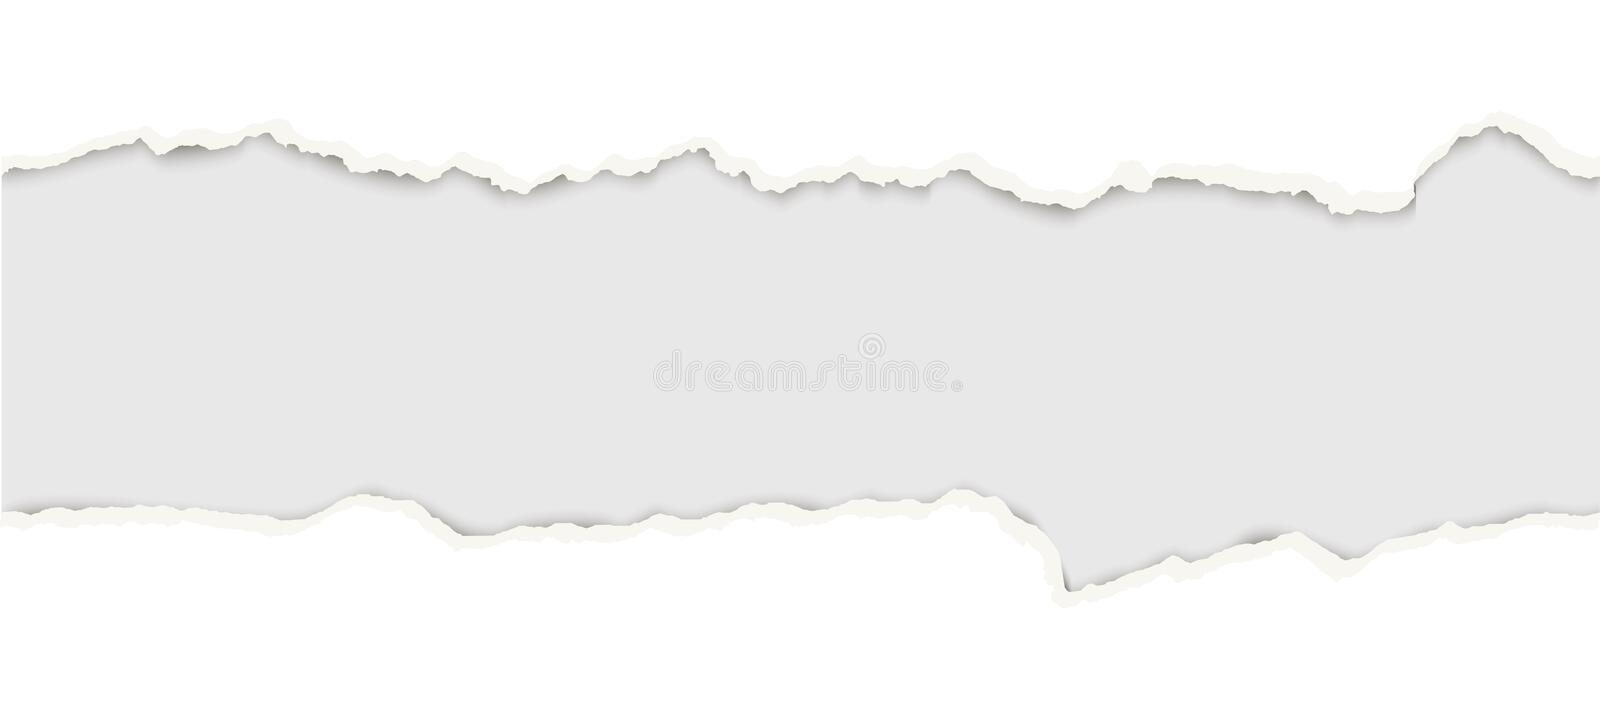 Ripped open paper. Upper and lower part of ripped open paper colored white royalty free illustration